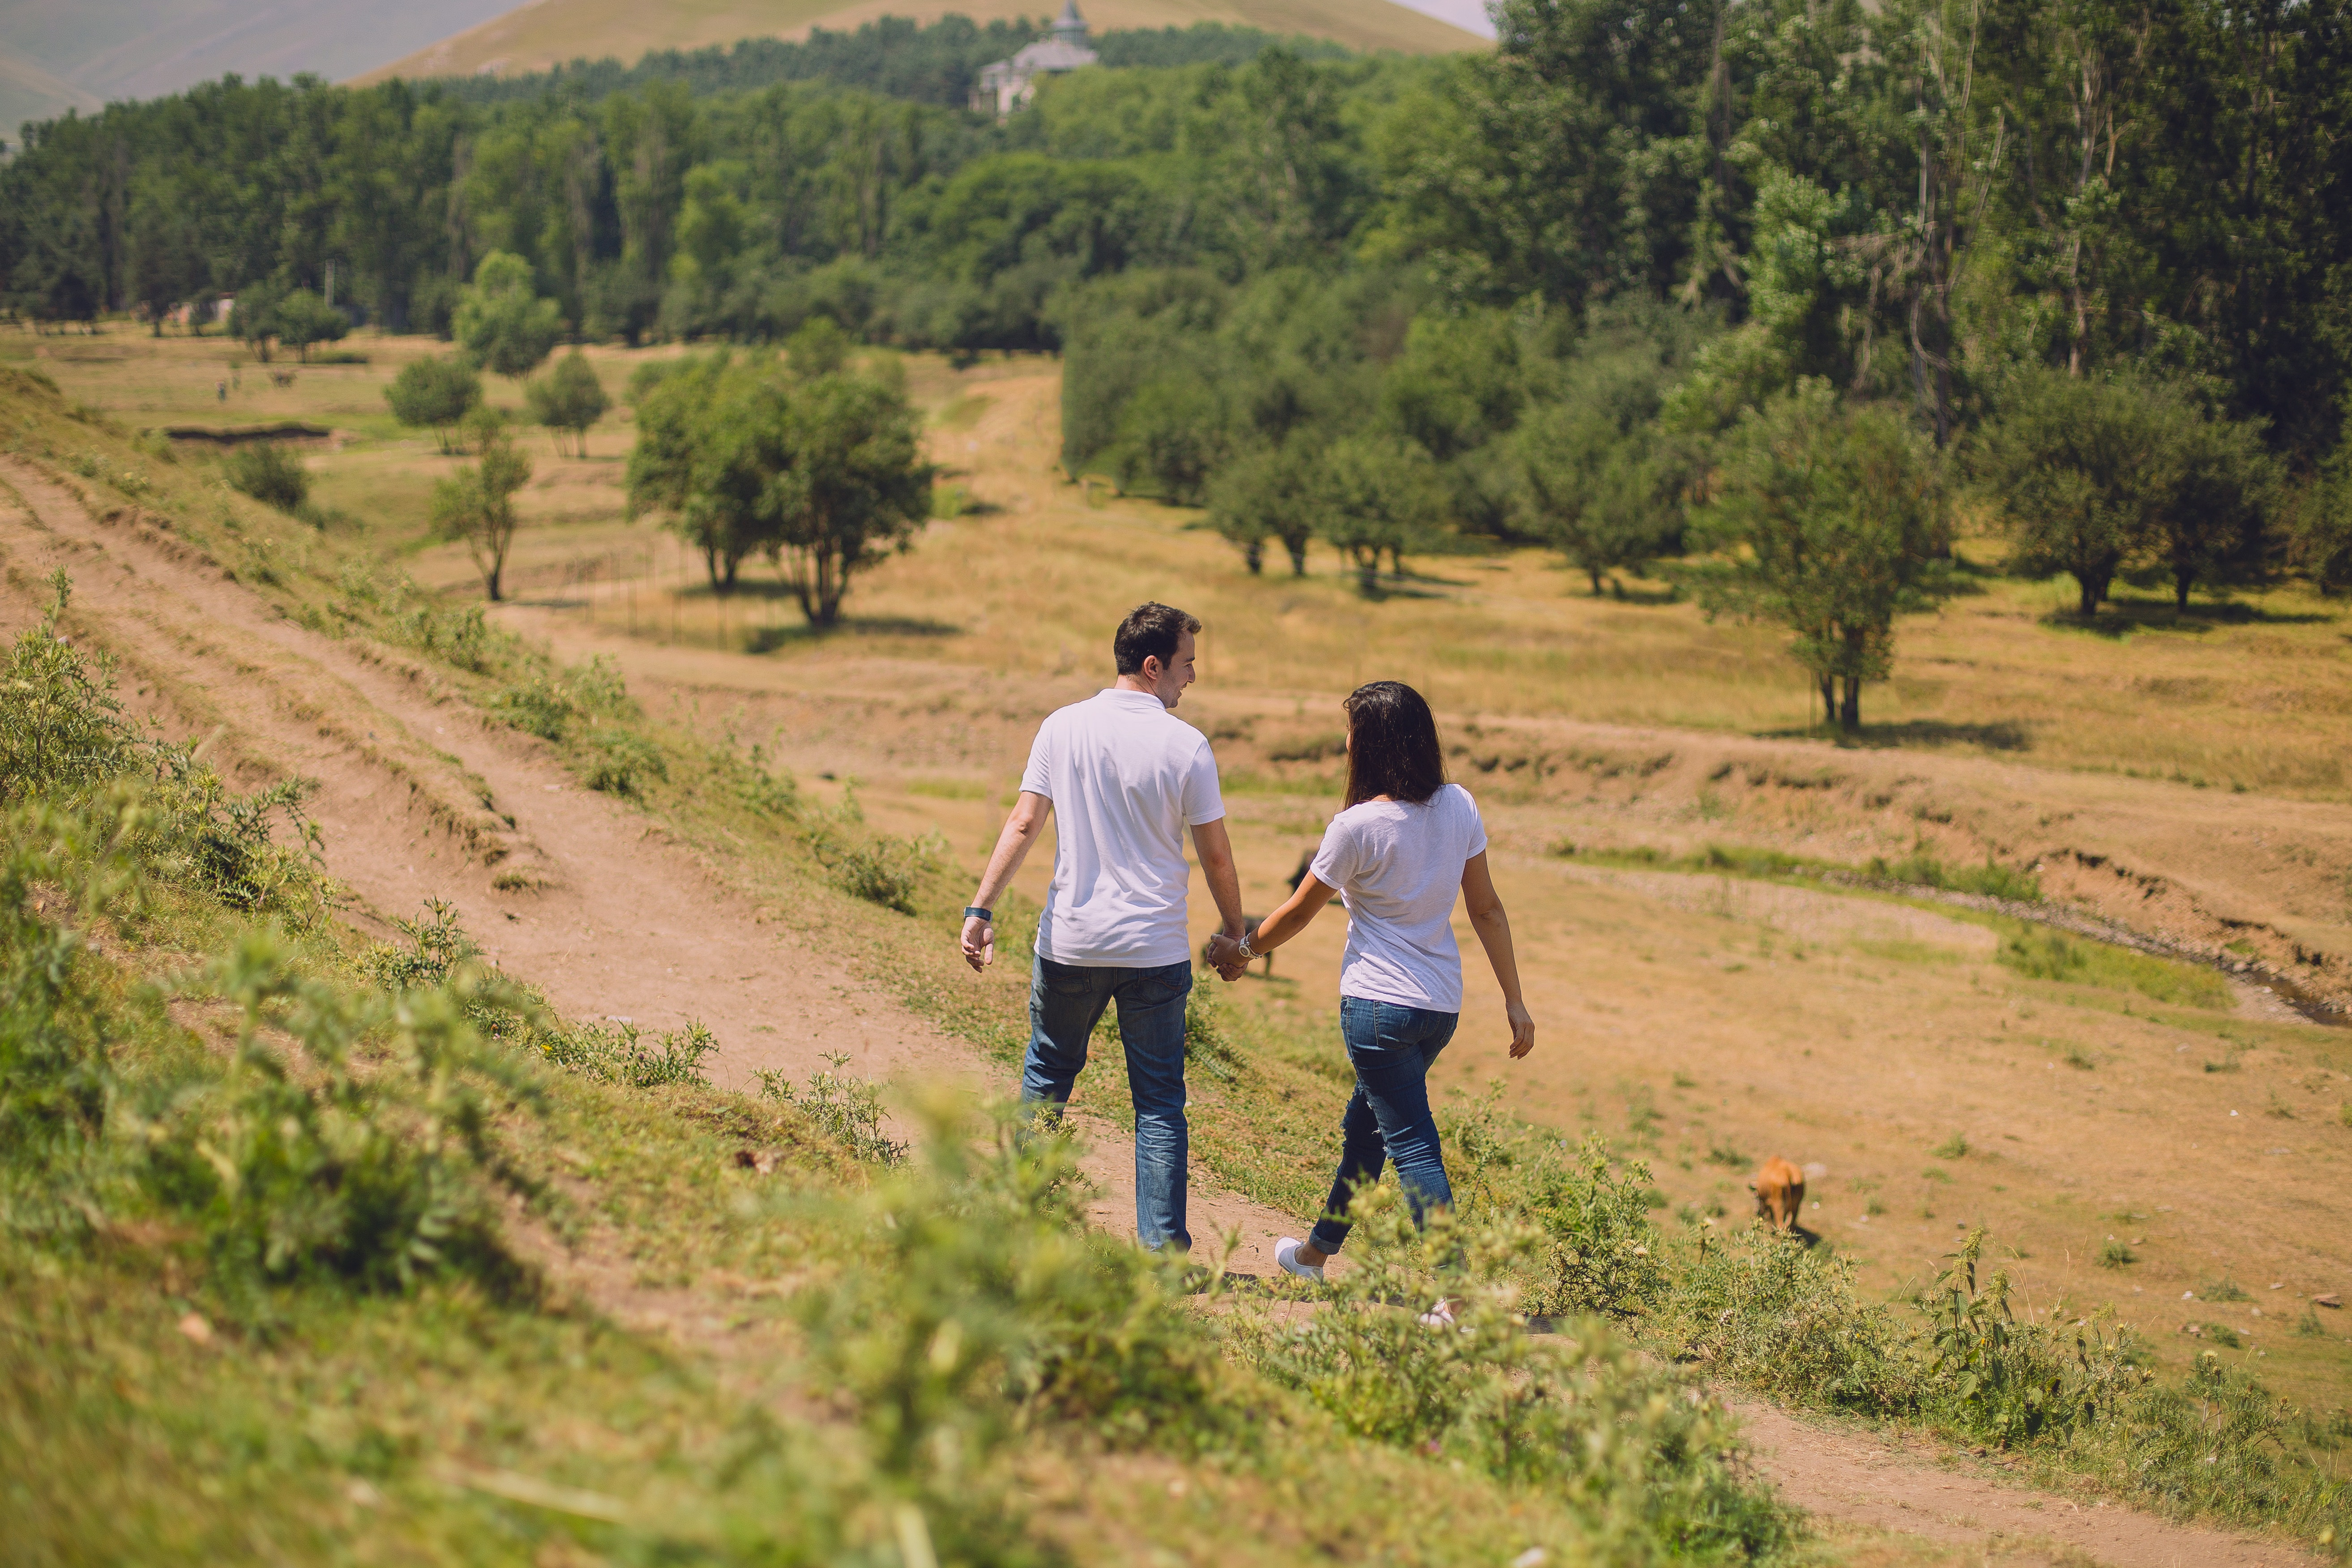 Man and Woman Walking, Road, Outdoors, Rural, Nature, HQ Photo